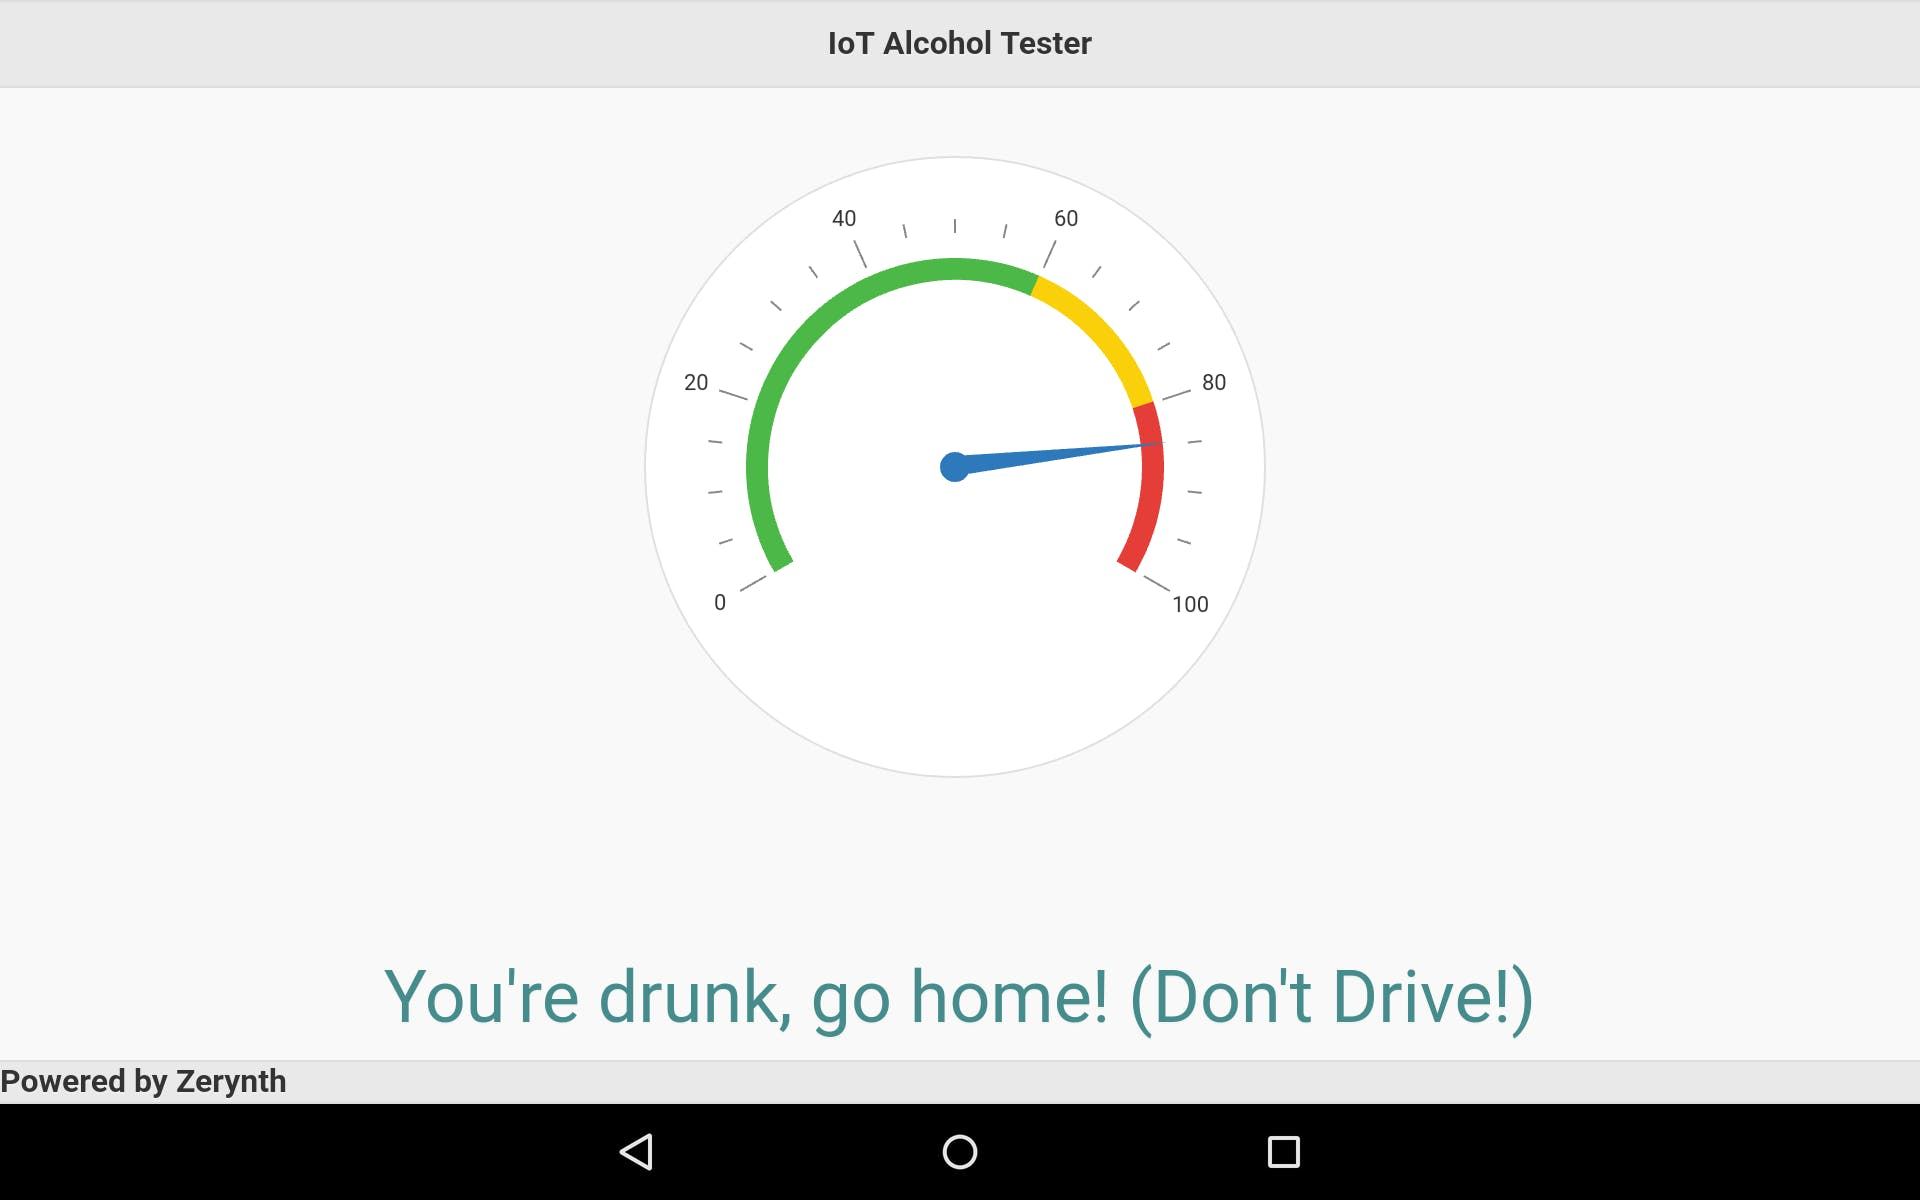 Zerynth App - You are drunk, go home! (Don't Drive!)